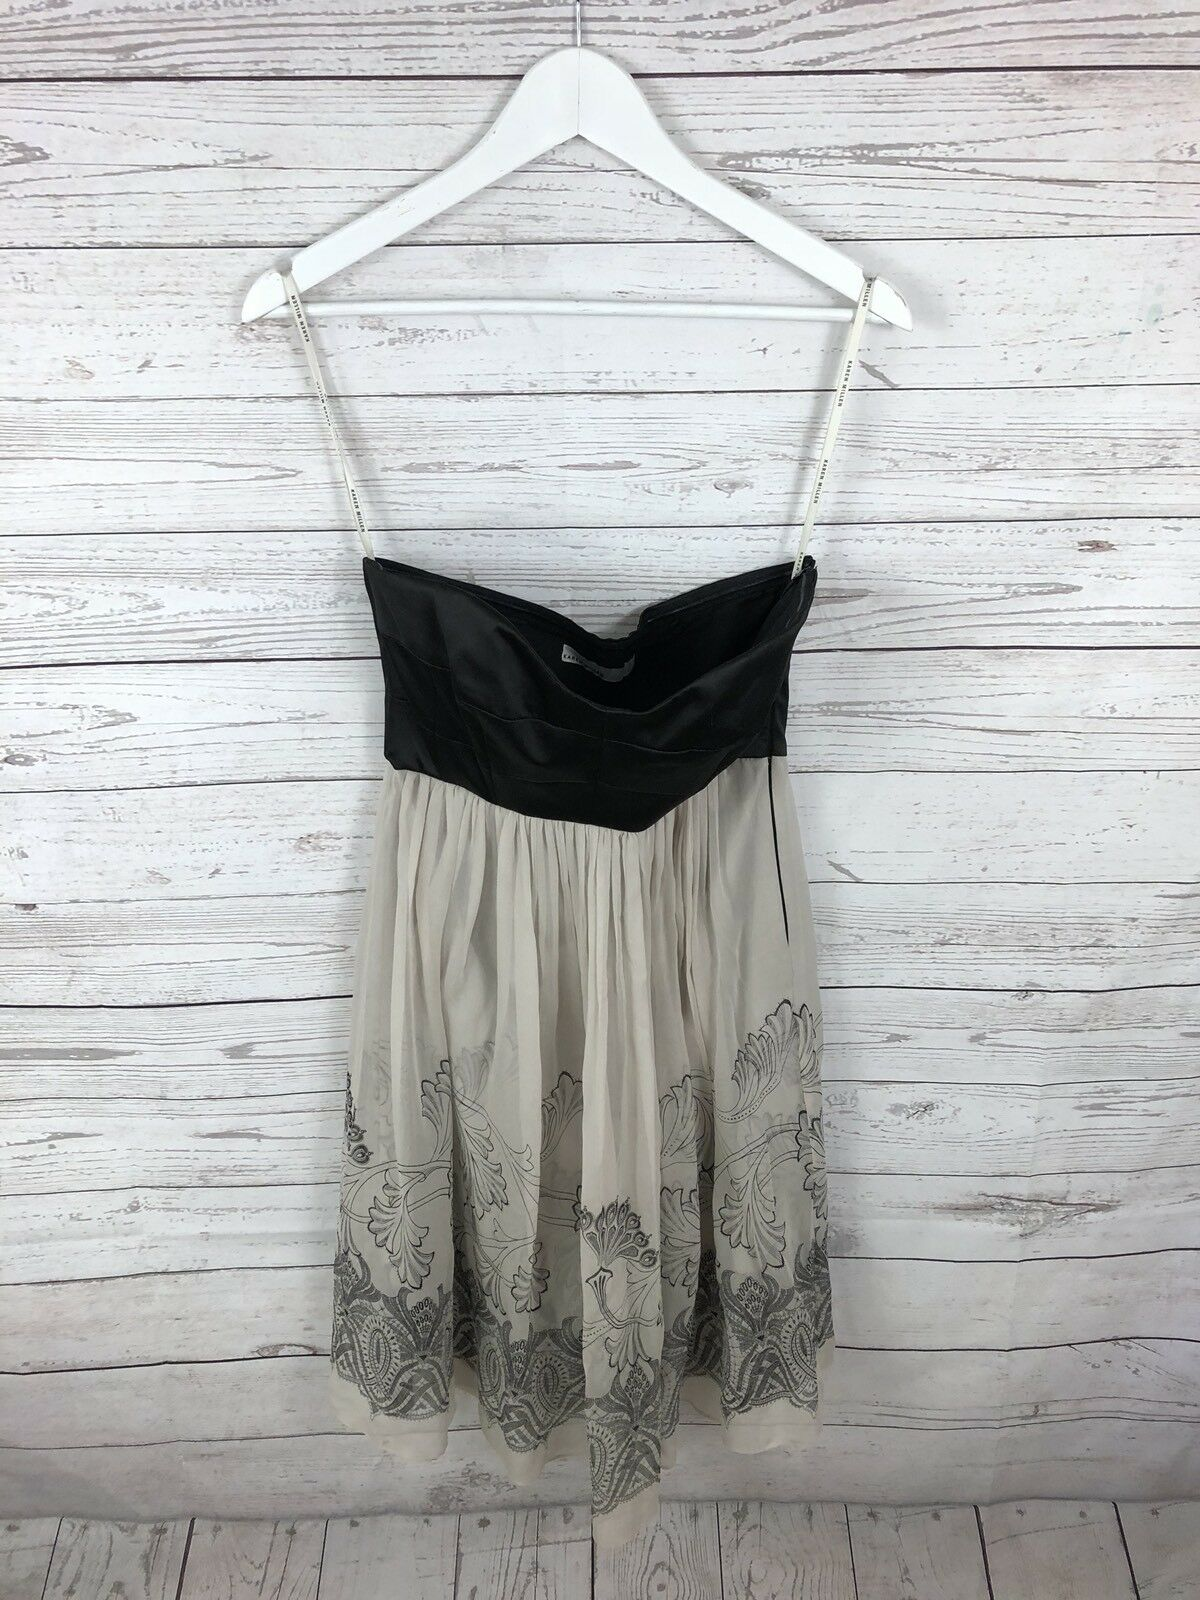 KAREN MILLEN Strapless Dress - UK10 - Silk - Great Condition - Women's